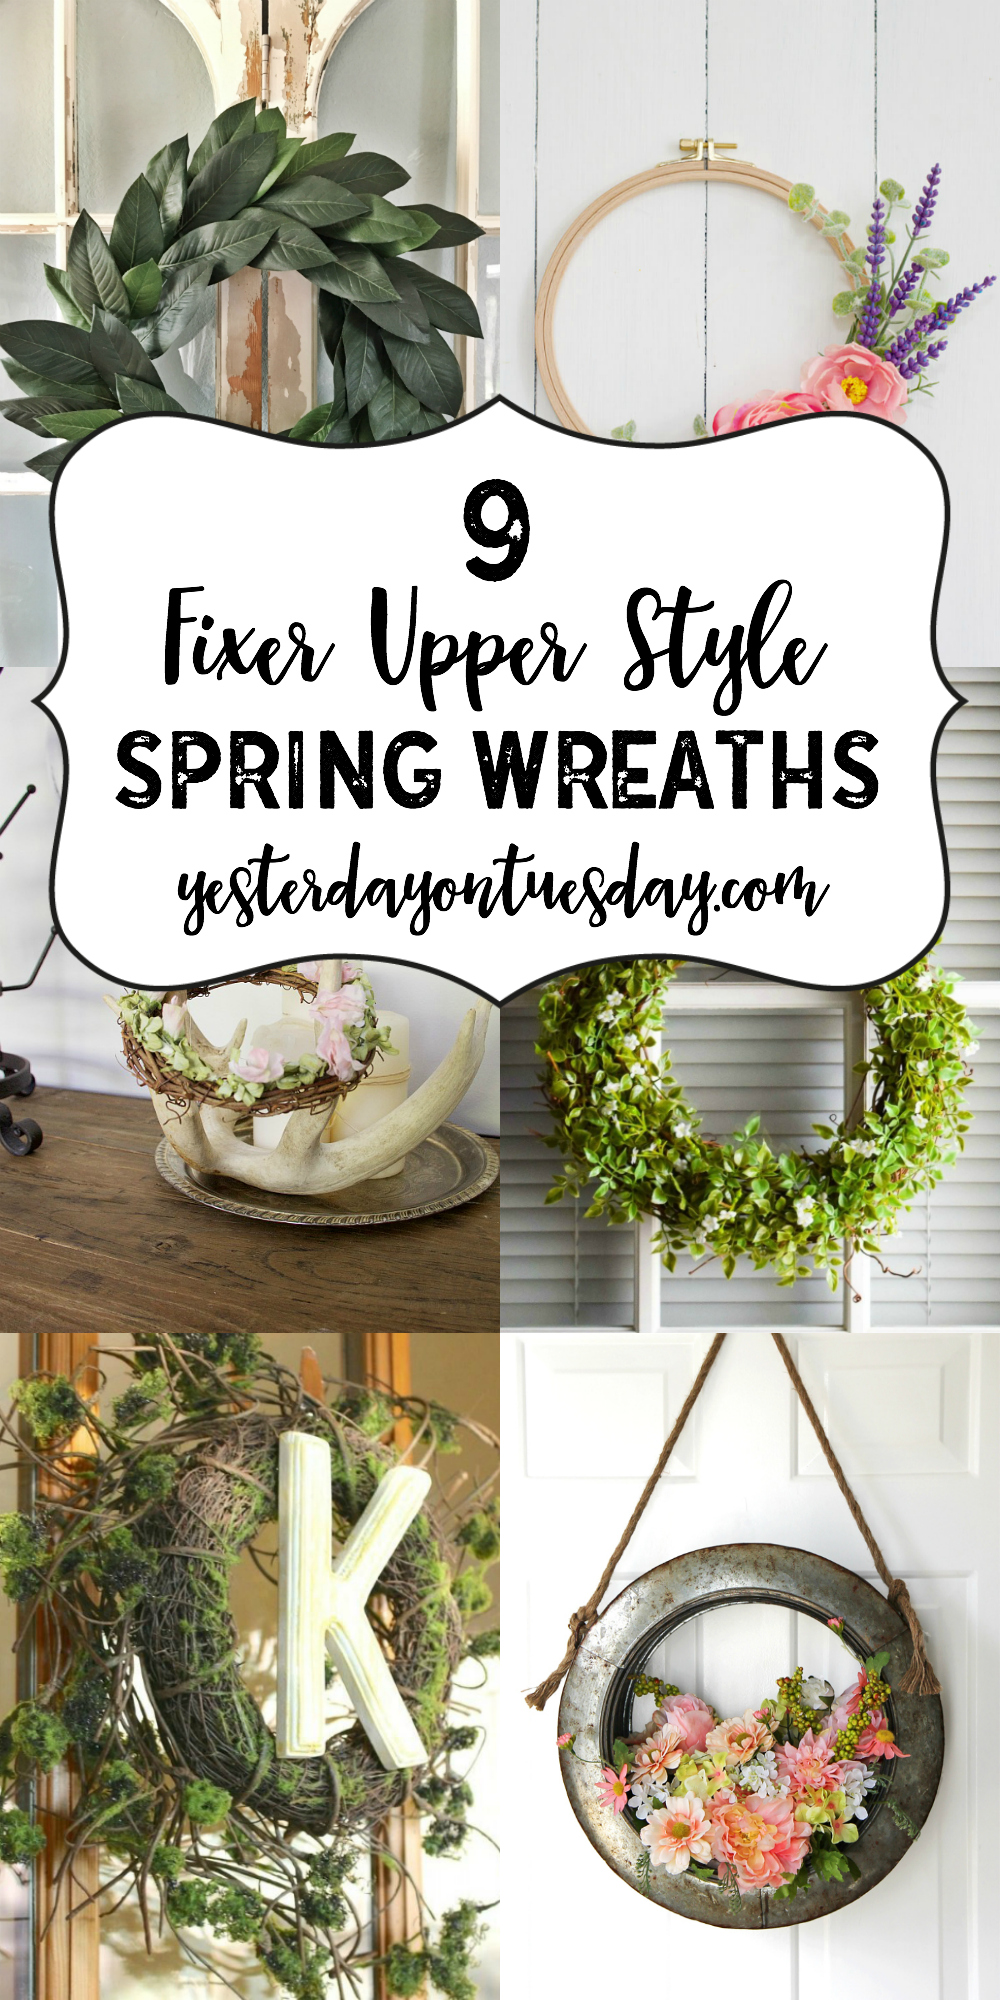 9 fixer upper style spring wreaths yesterday on tuesday. Black Bedroom Furniture Sets. Home Design Ideas